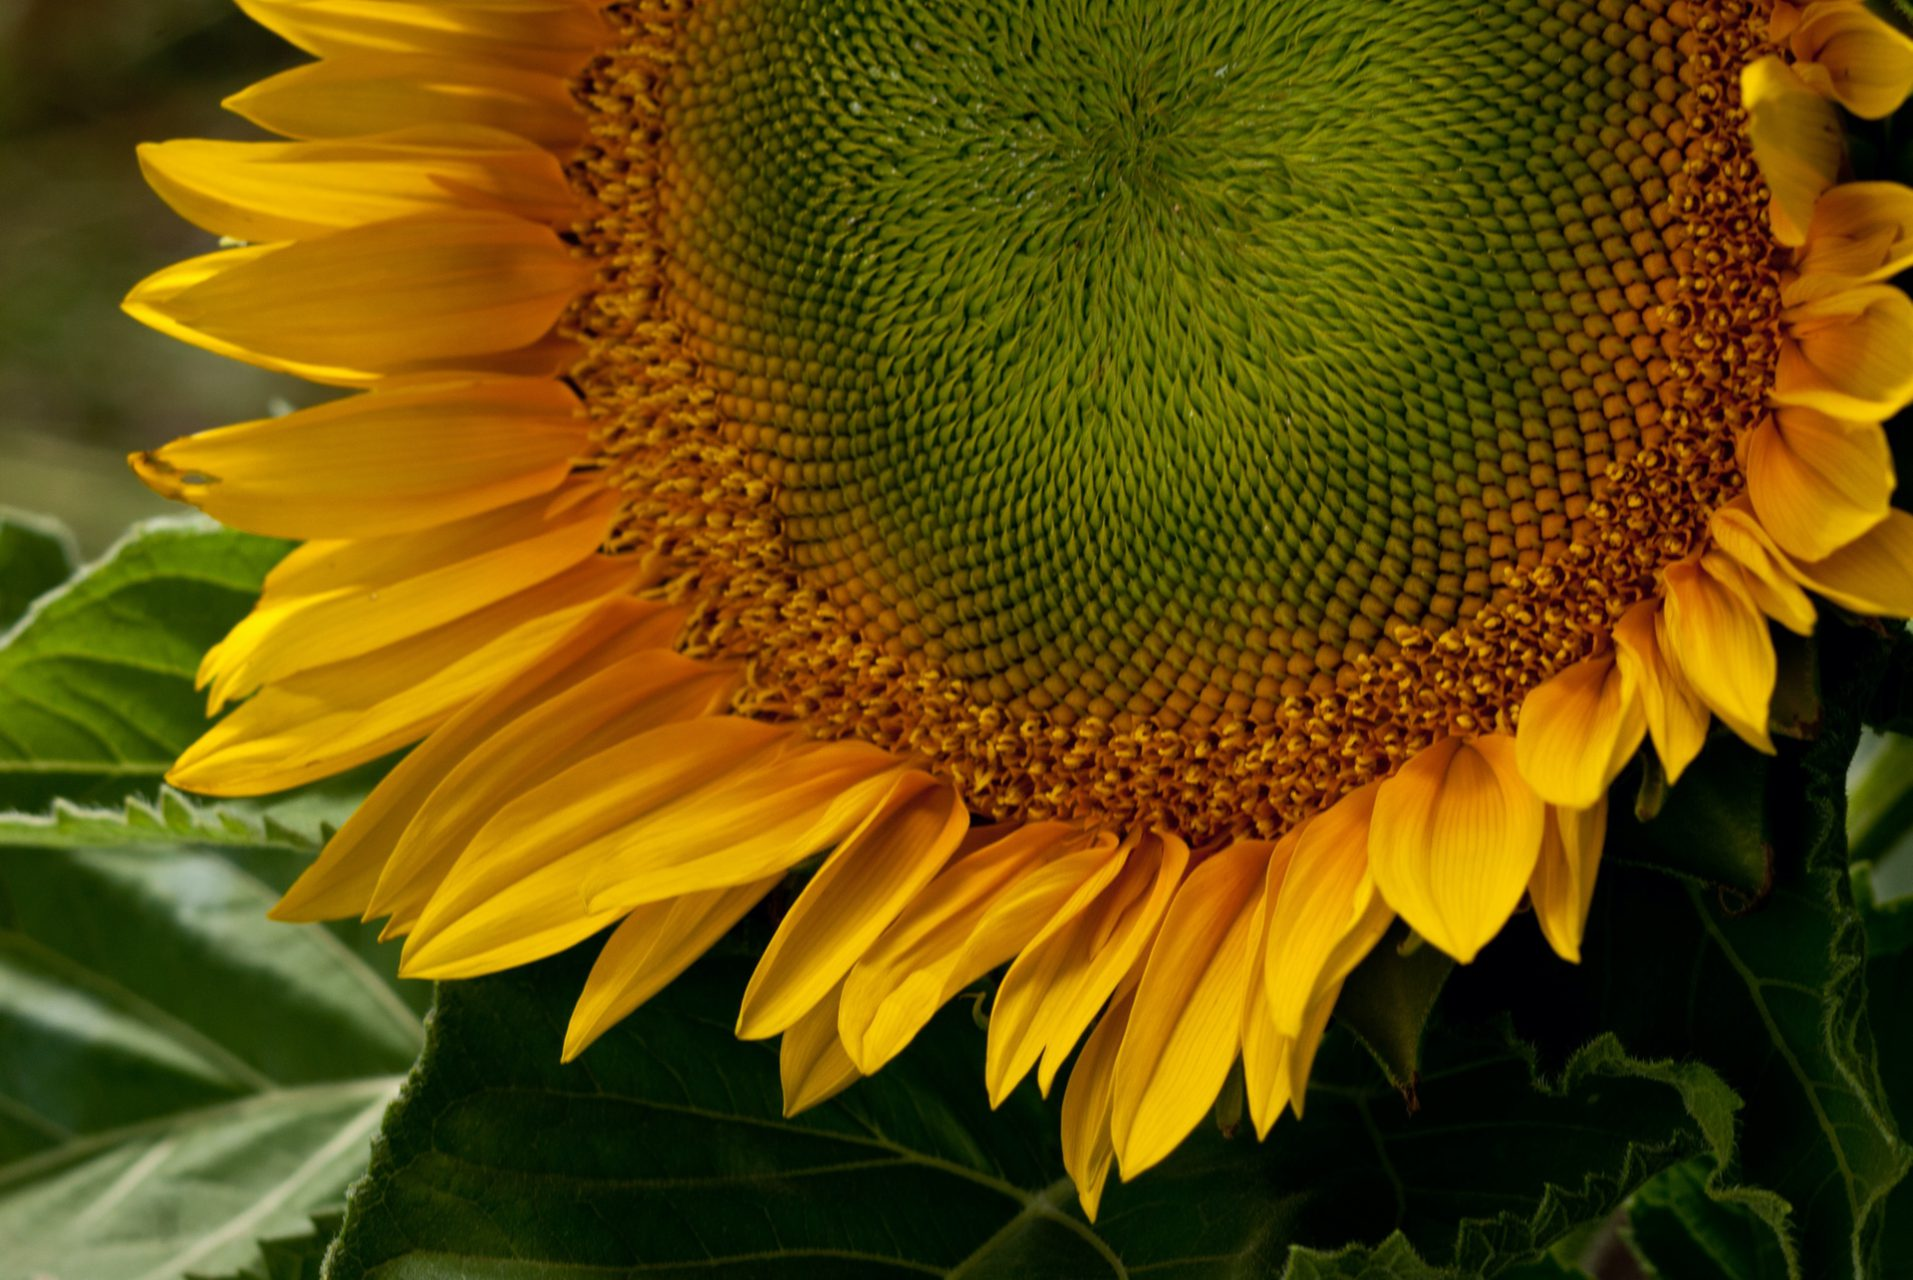 Sunflower from the Farm